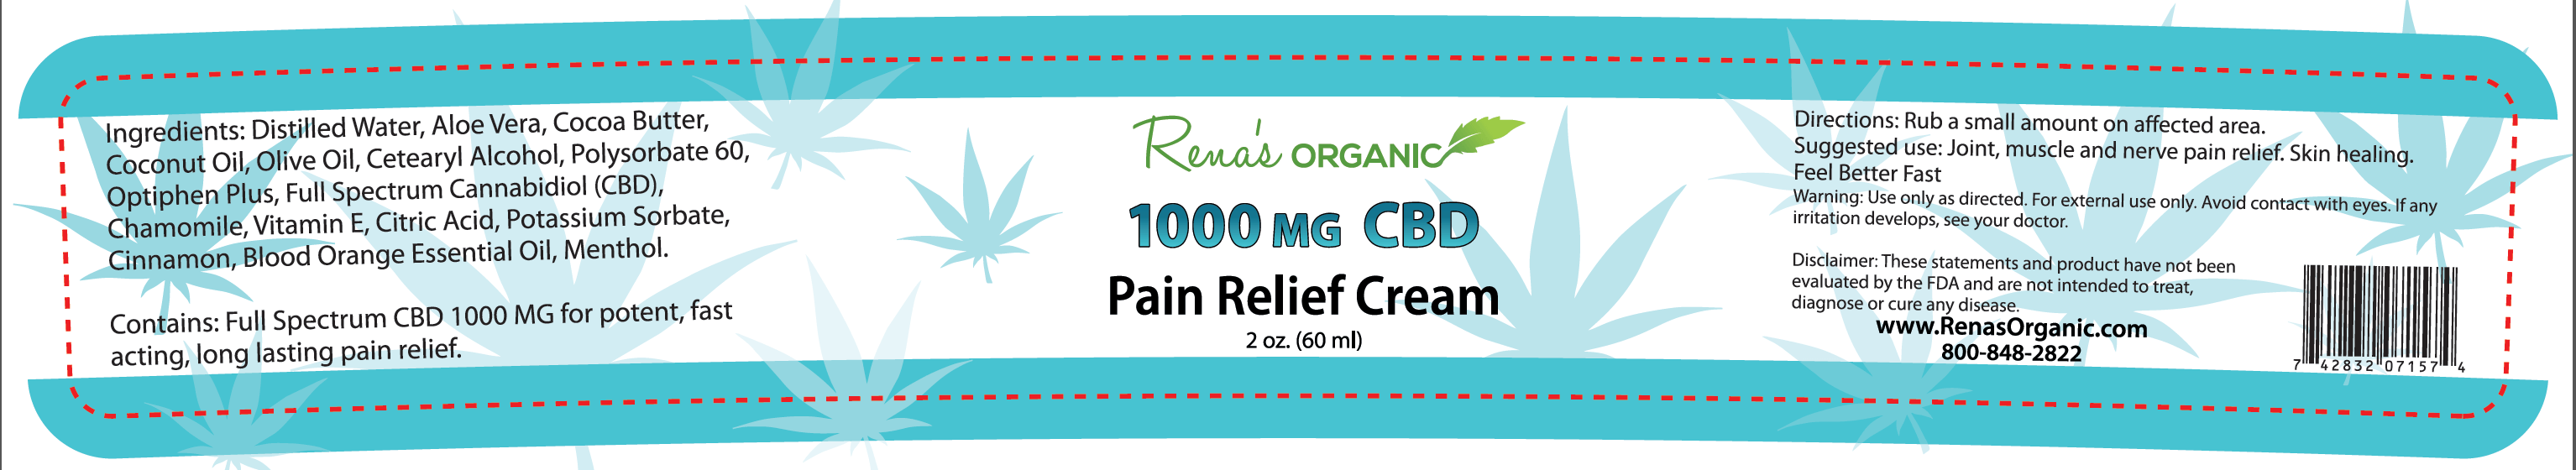 1000 mg pain relief cream label